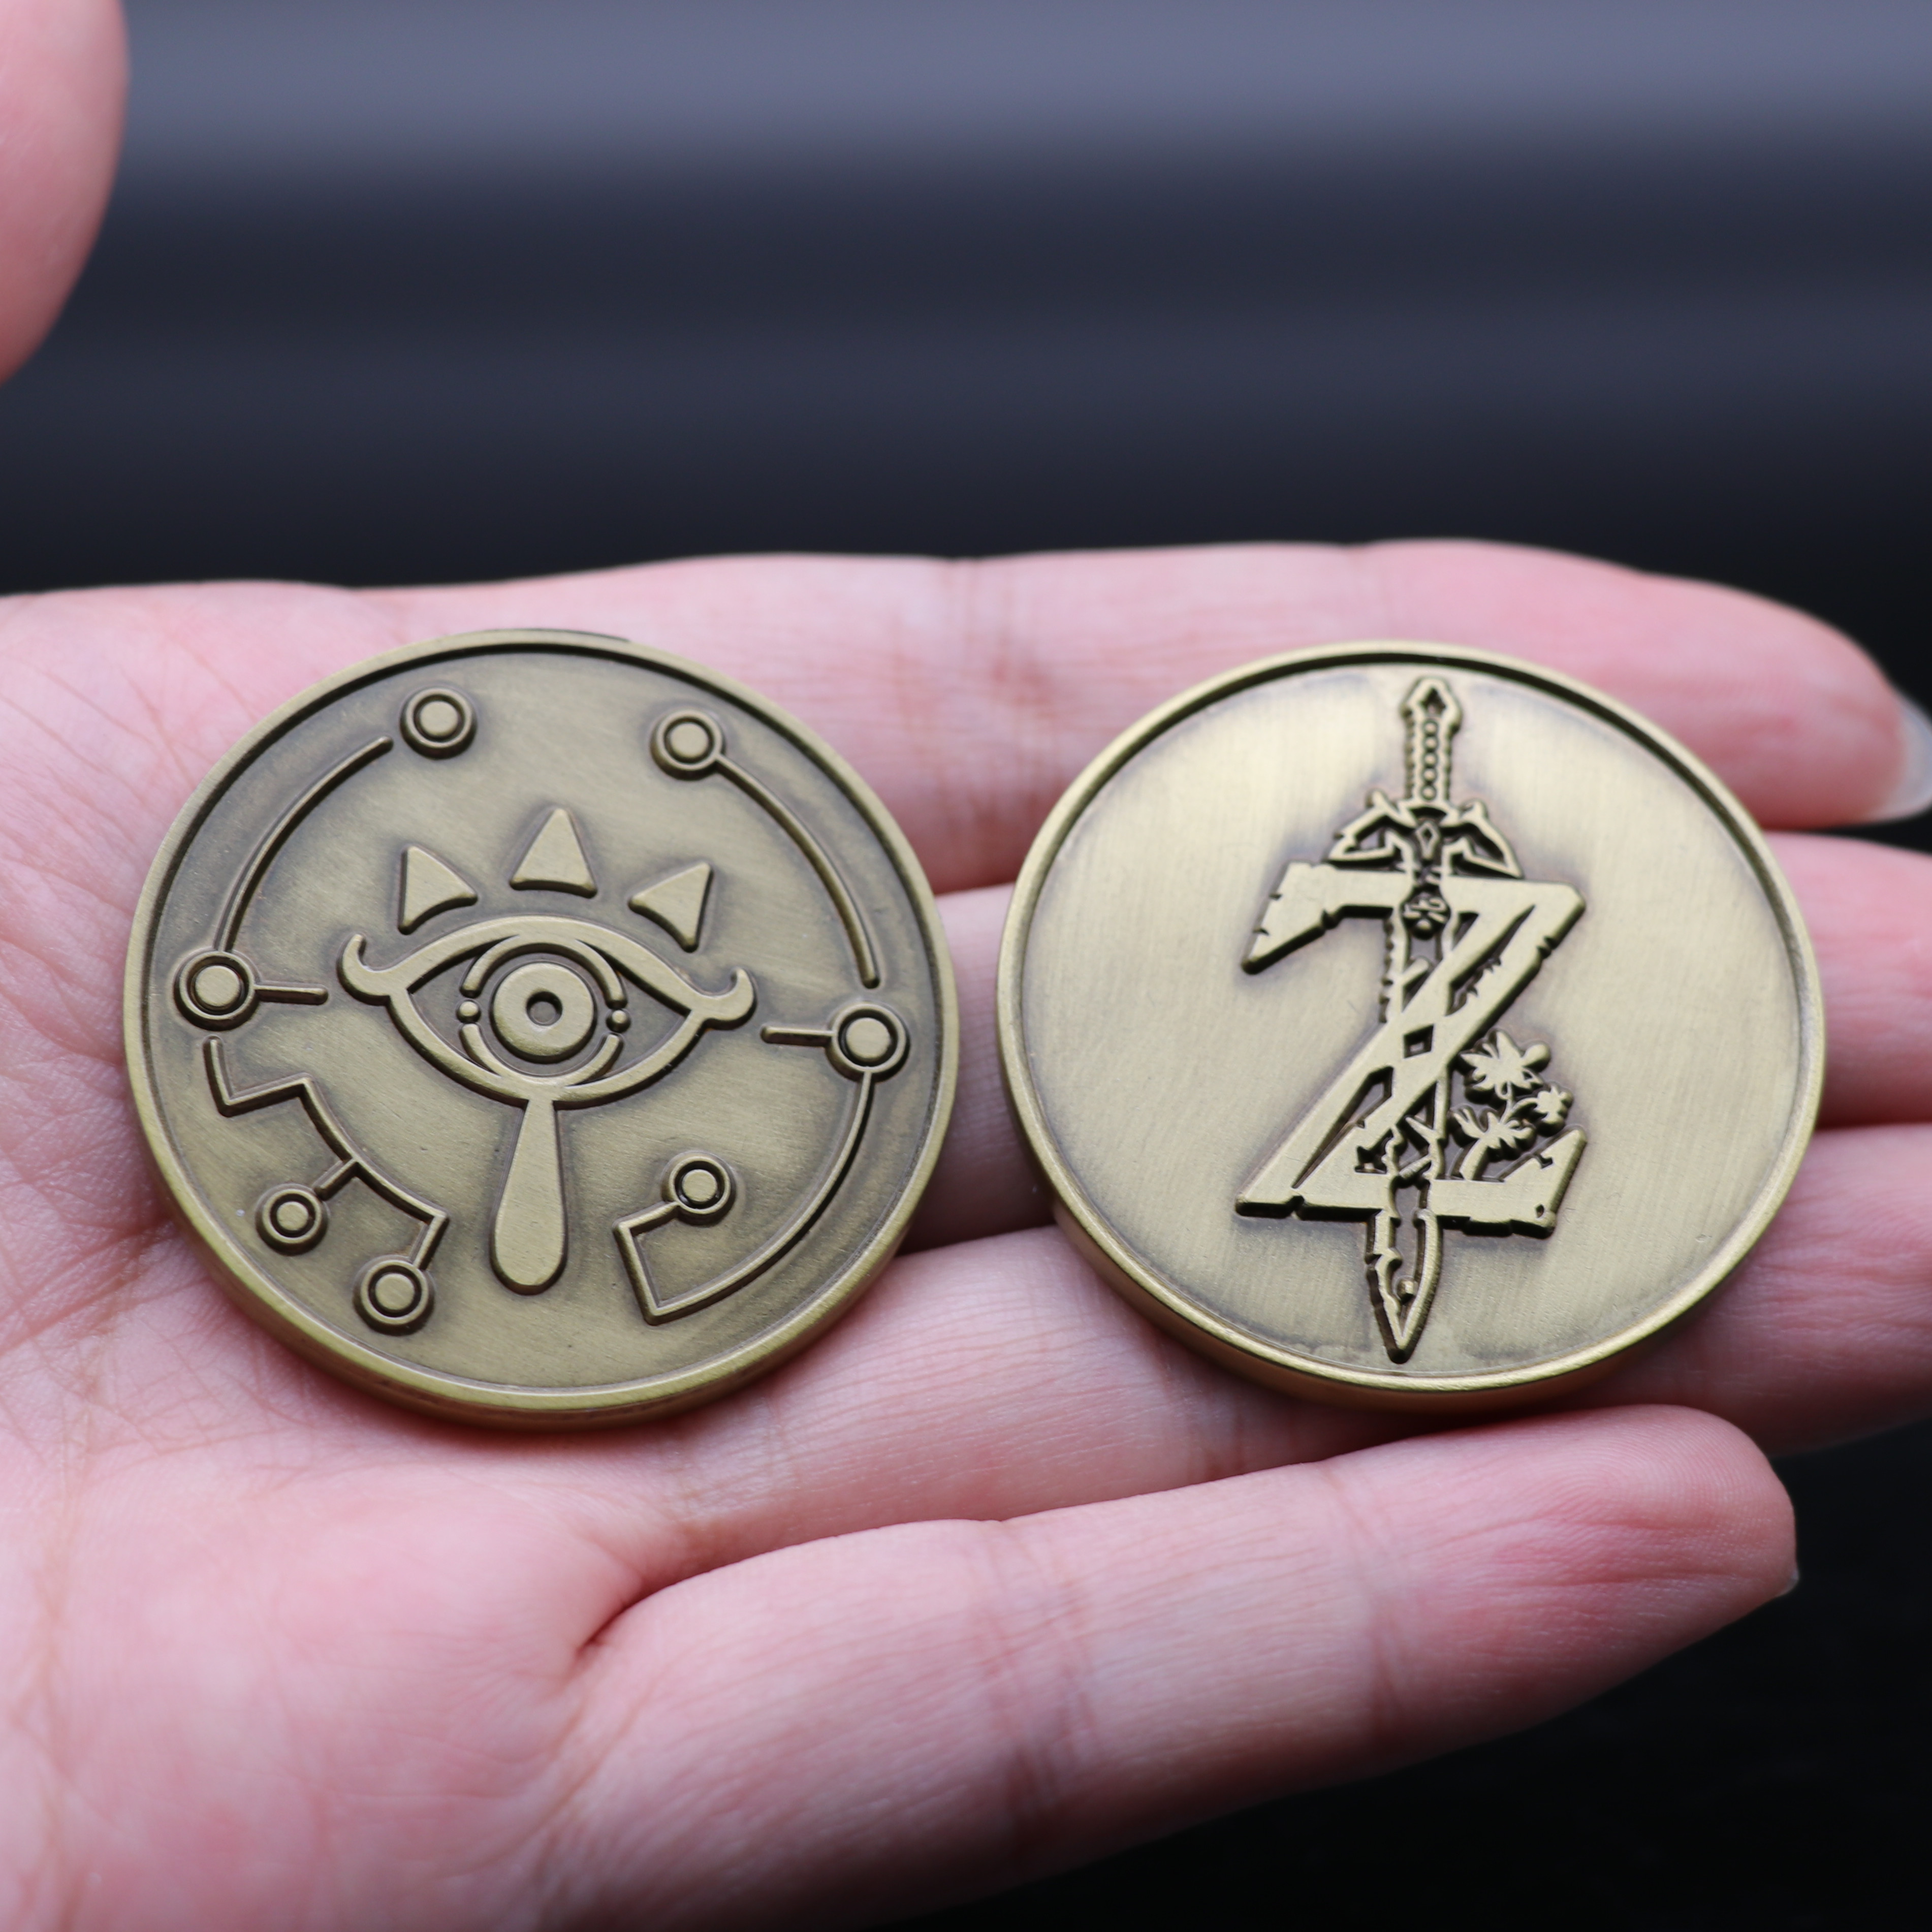 Game The Legend Of Zelda Coin Breath Of The Wild Collect Coin Commemorative Coins Tossing Badge Christmas Fans Gift 4CM Metal